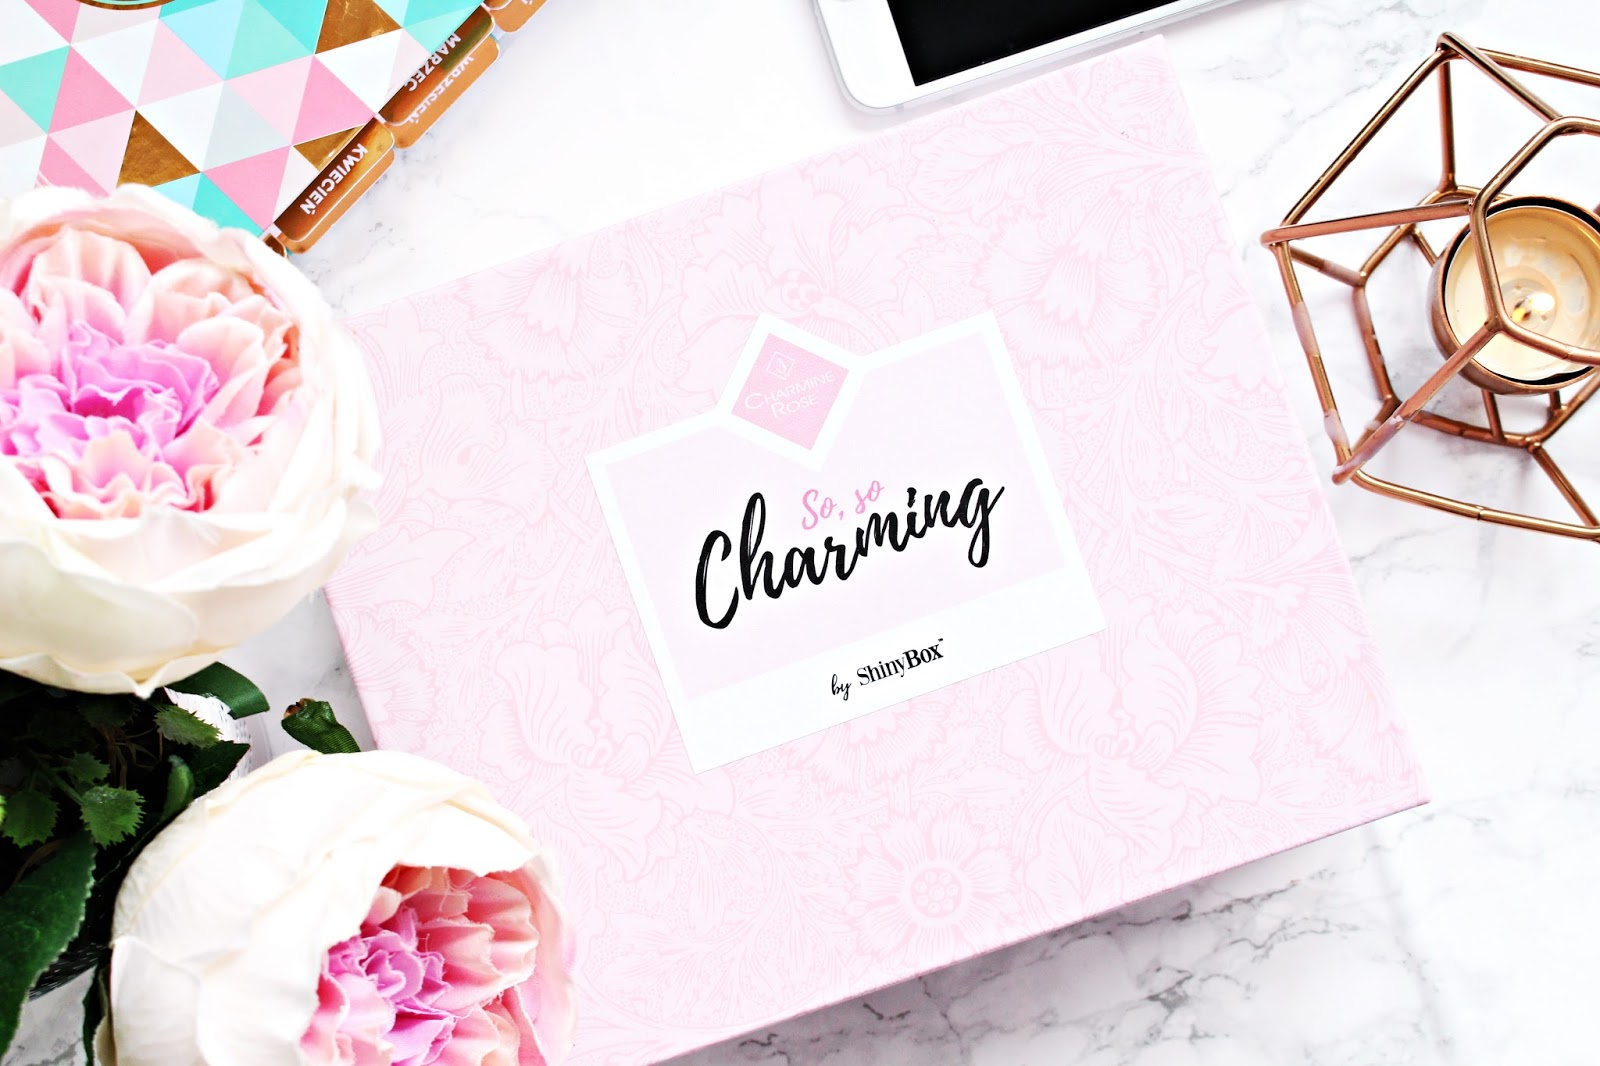 ShinyBox ➤ So So Charming ➤ Charmine Rose